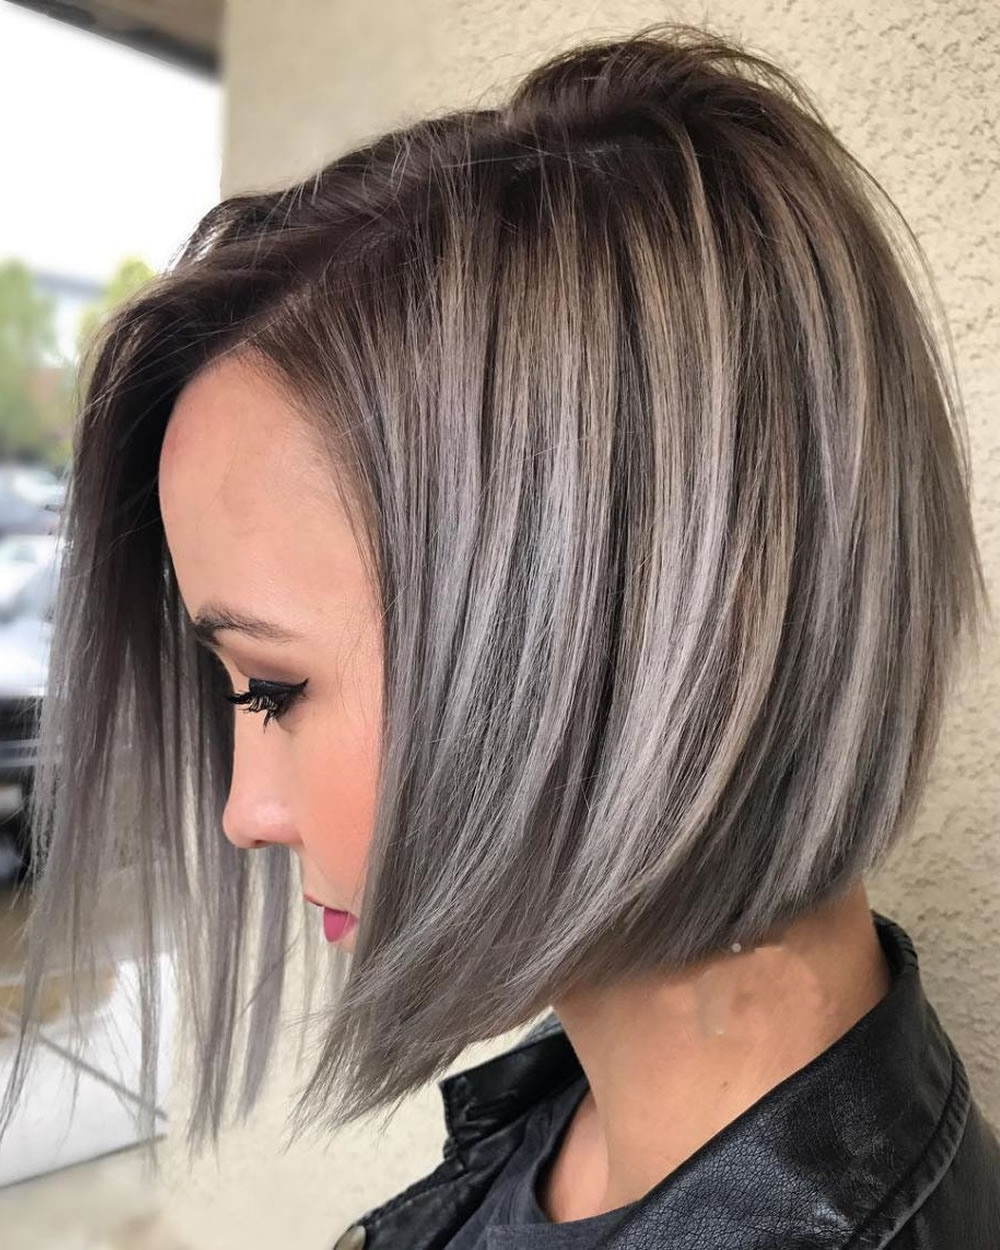 Asymmetrical Short Haircuts With Balayage Highlights 2018 – 2019 Intended For Latest Shaggy Pixie Haircuts With Balayage Highlights (Gallery 8 of 15)